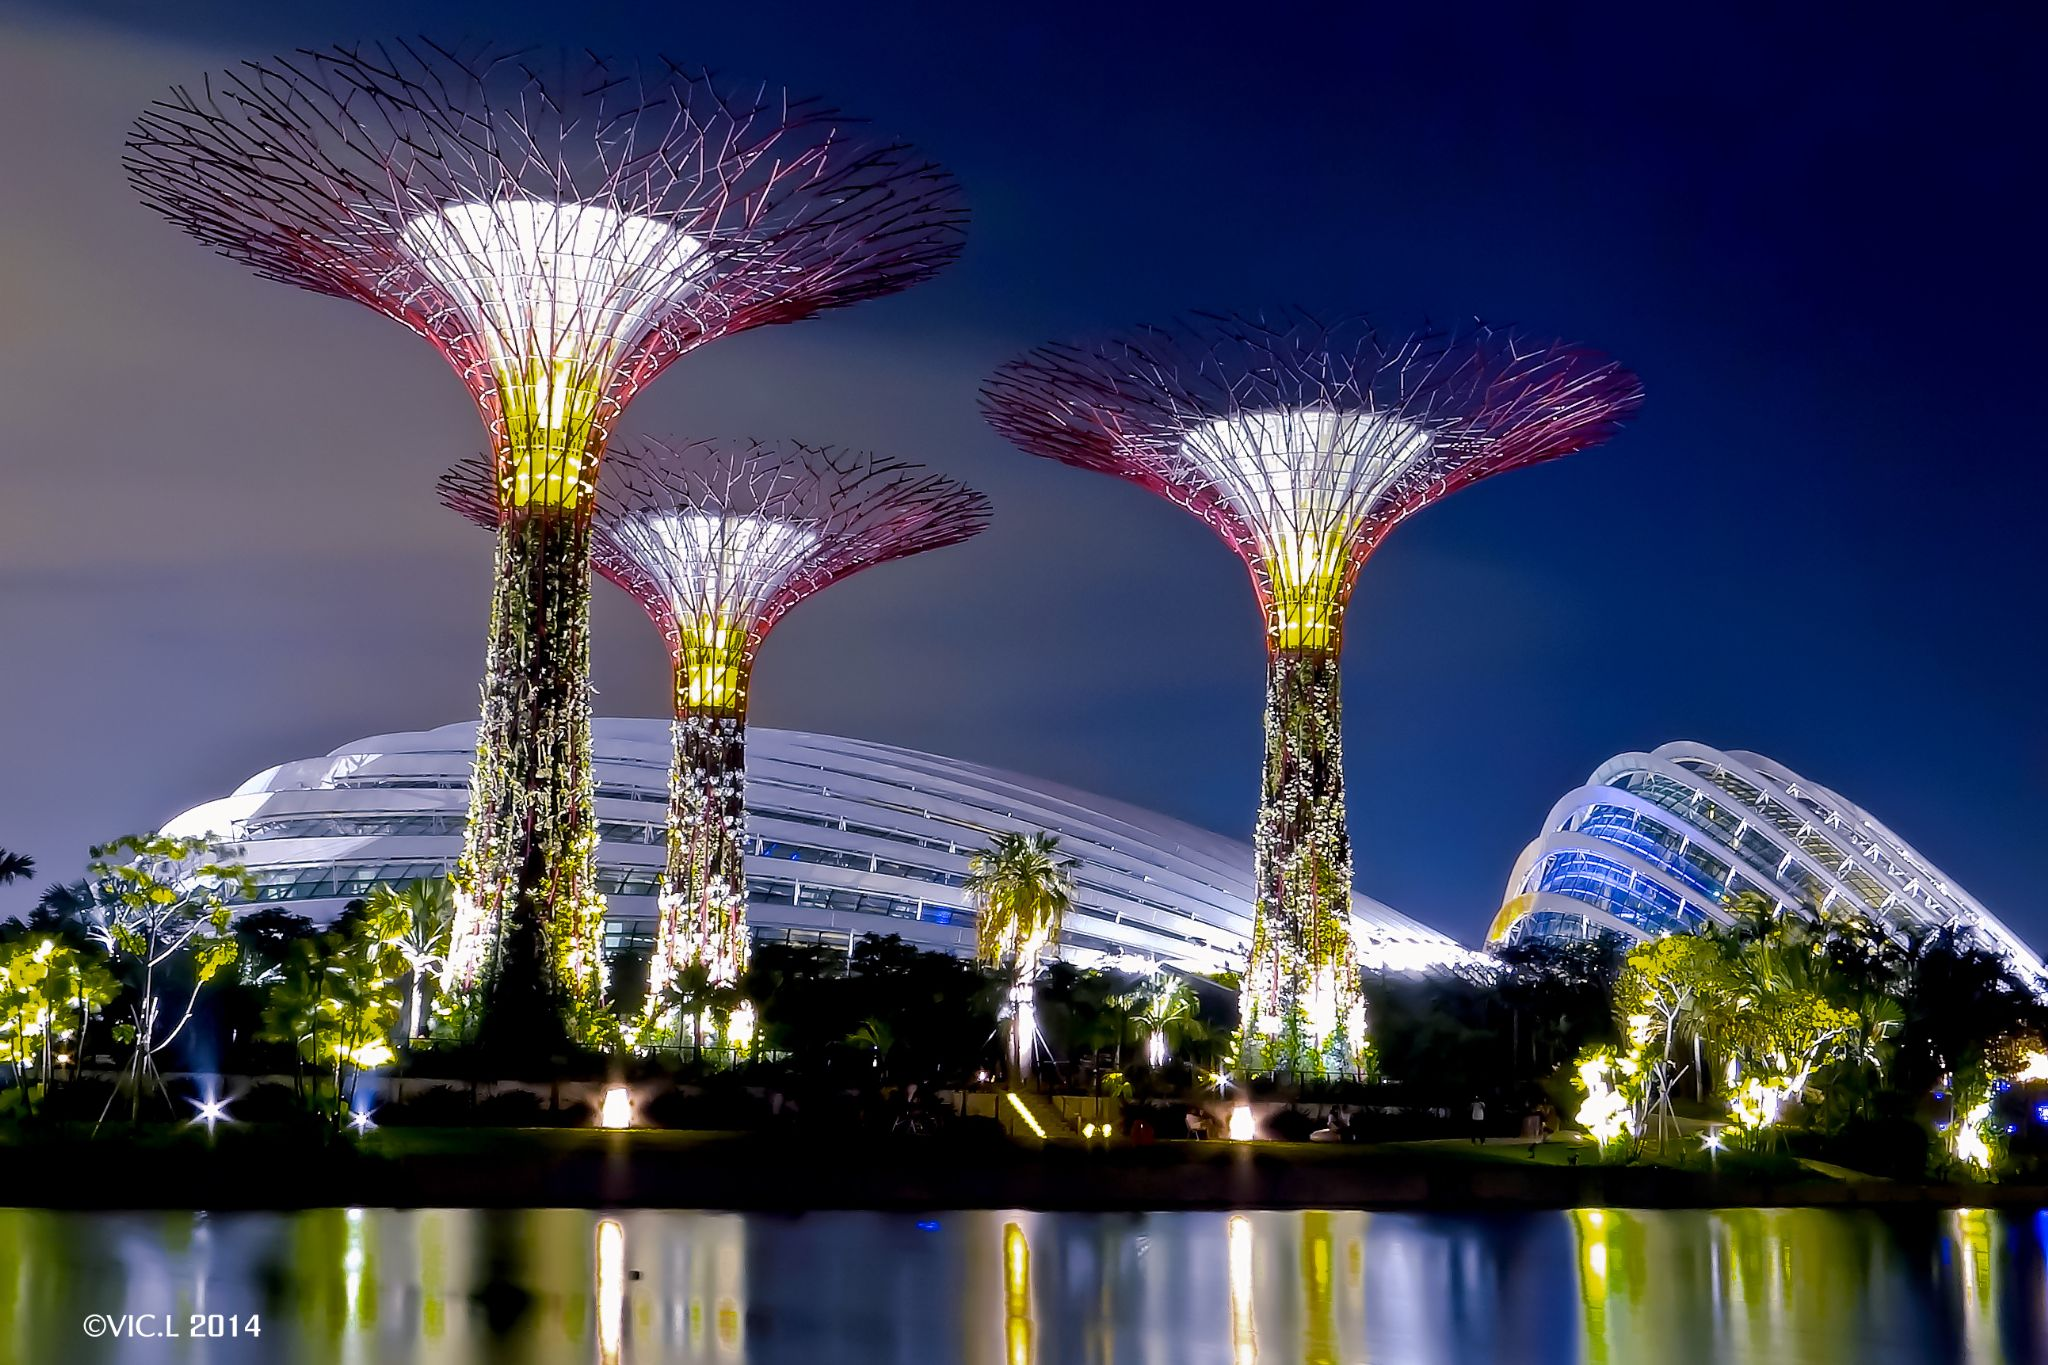 Garden By The Bay by VIC.L